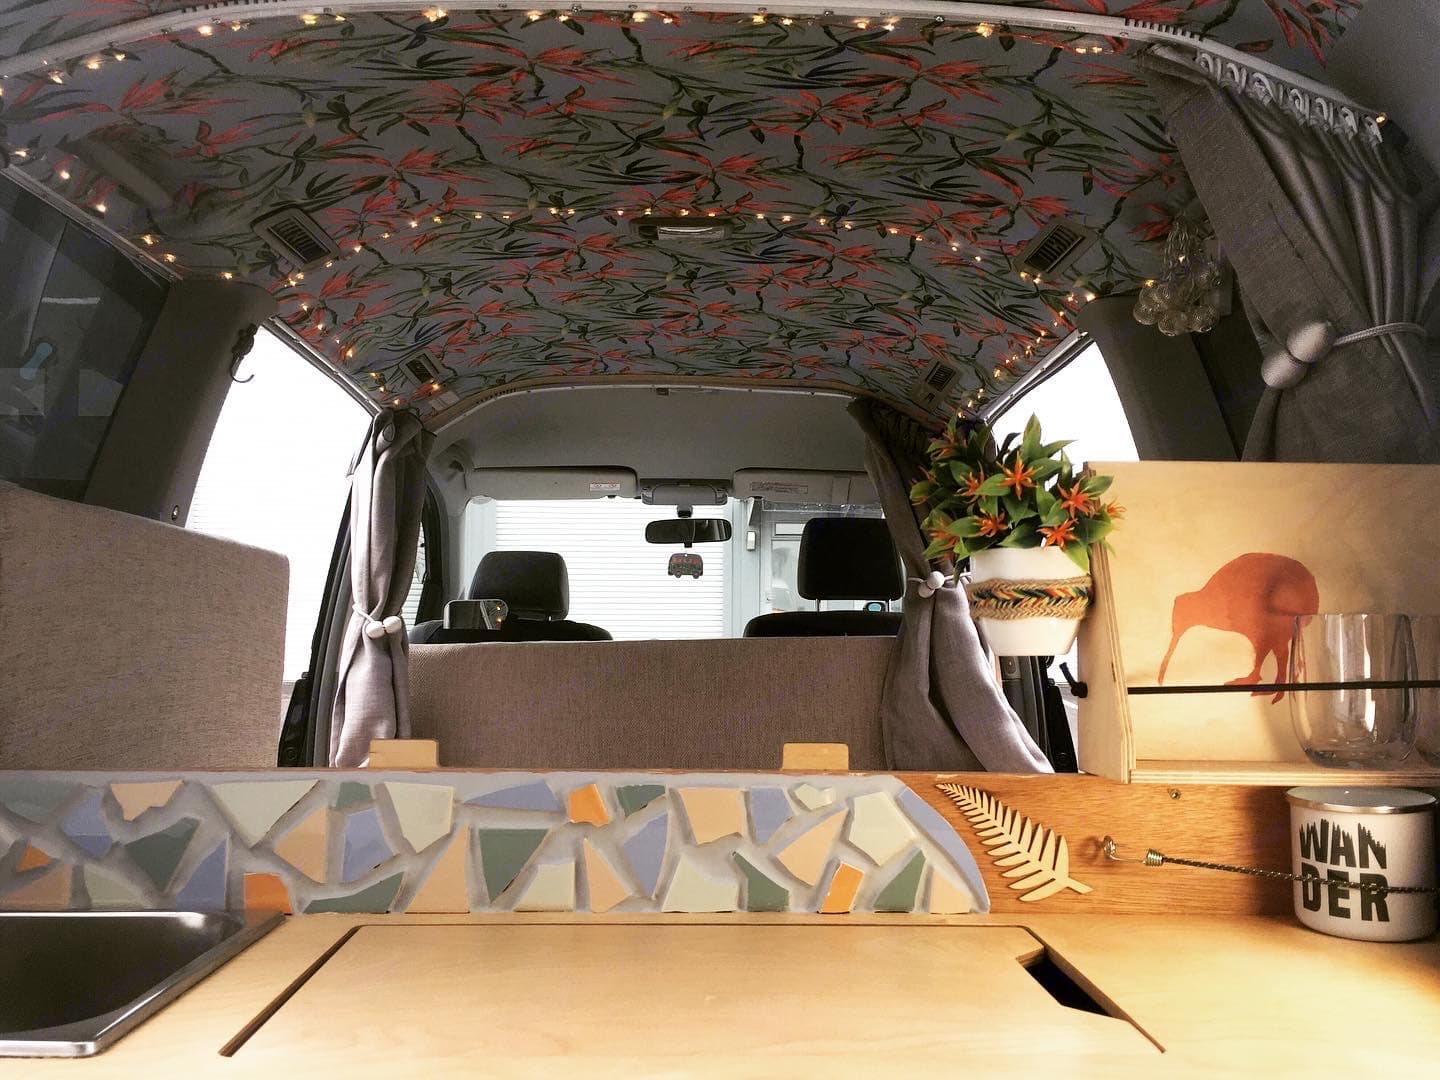 Mojo Campers Sleepervans are comfortable and functional. We made no compromise. A comfy place to stay that won't make you feel homesick — it is home!. Toyota Voxy 2007